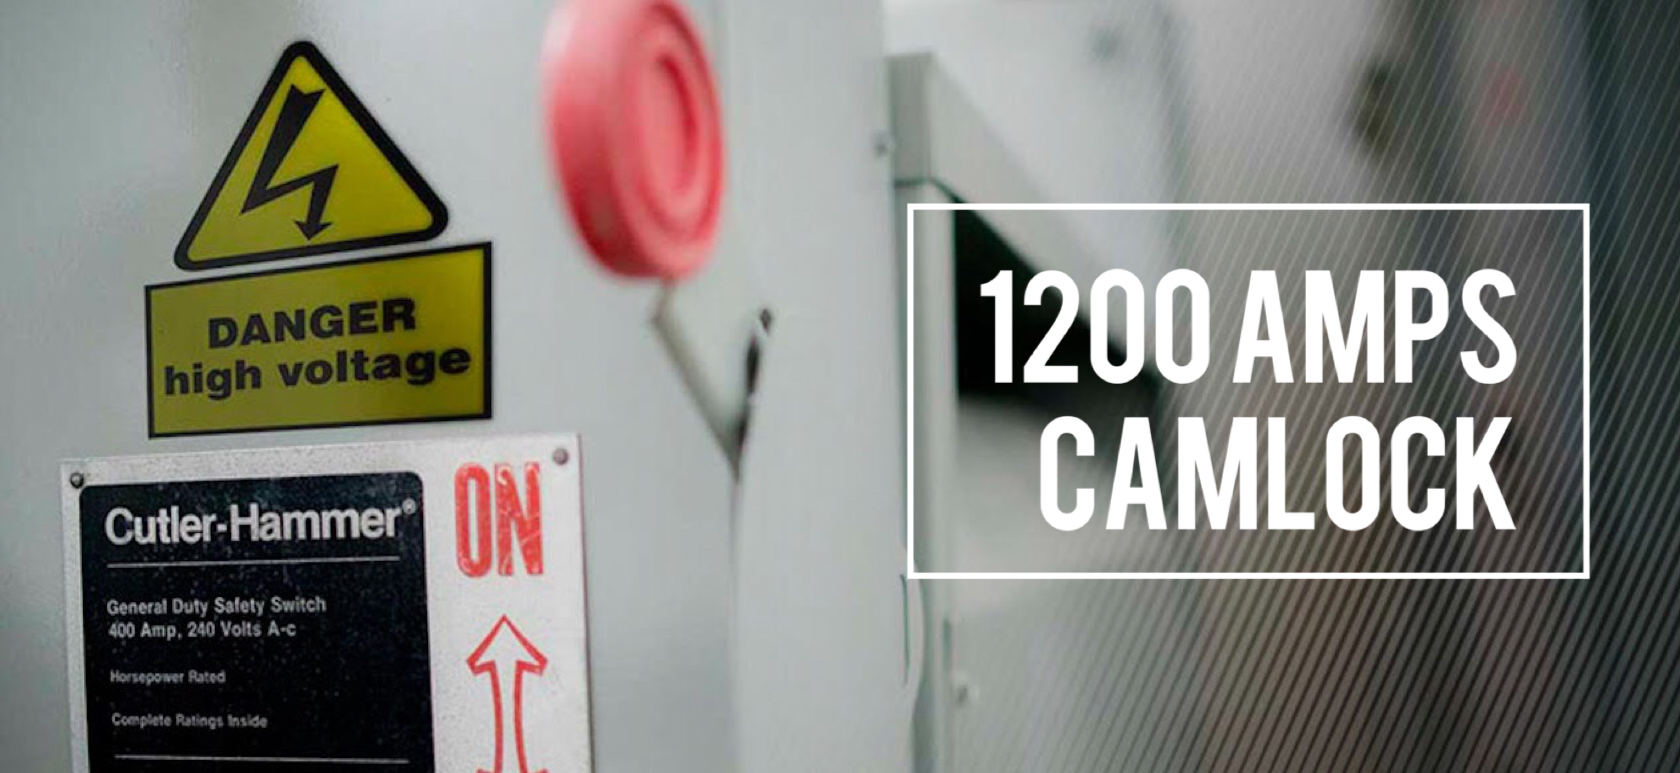 1200 AMPS CAMLOCK